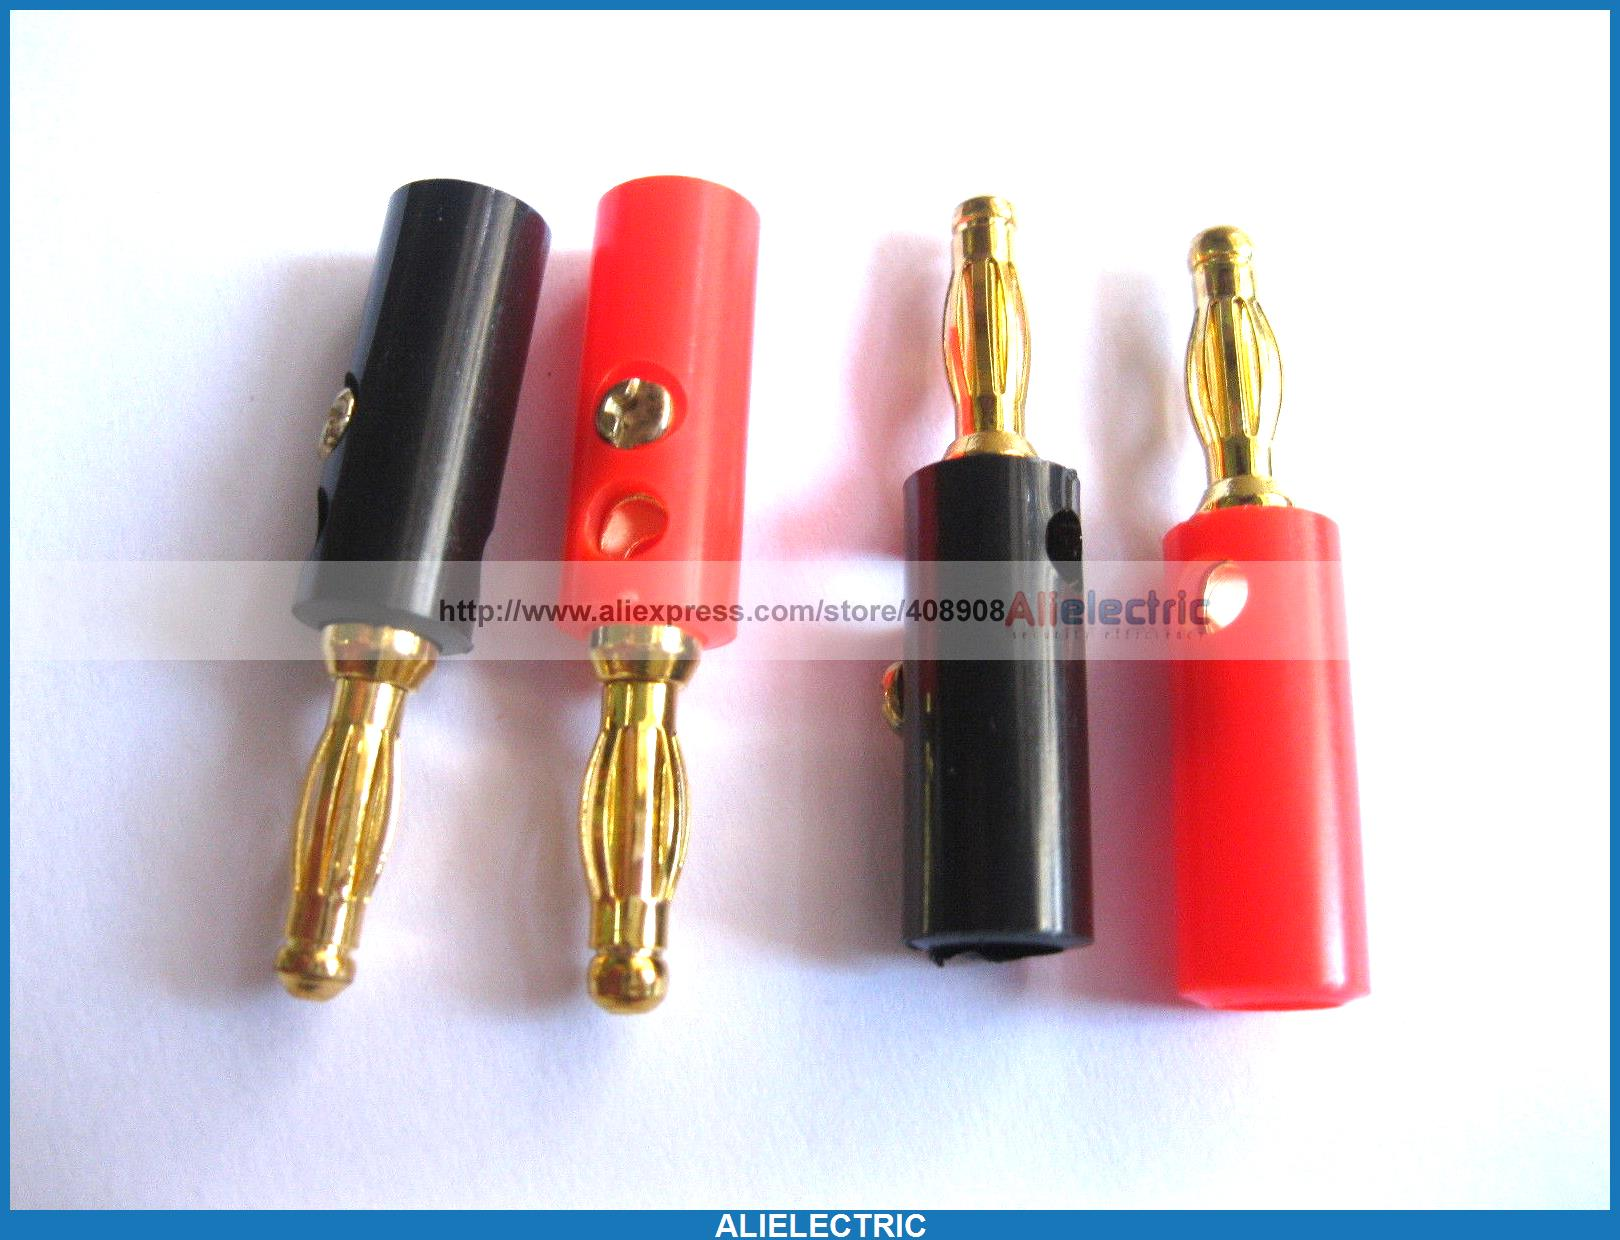 80 Pcs Banana Plug Gold Plated Red Black 40mm 215